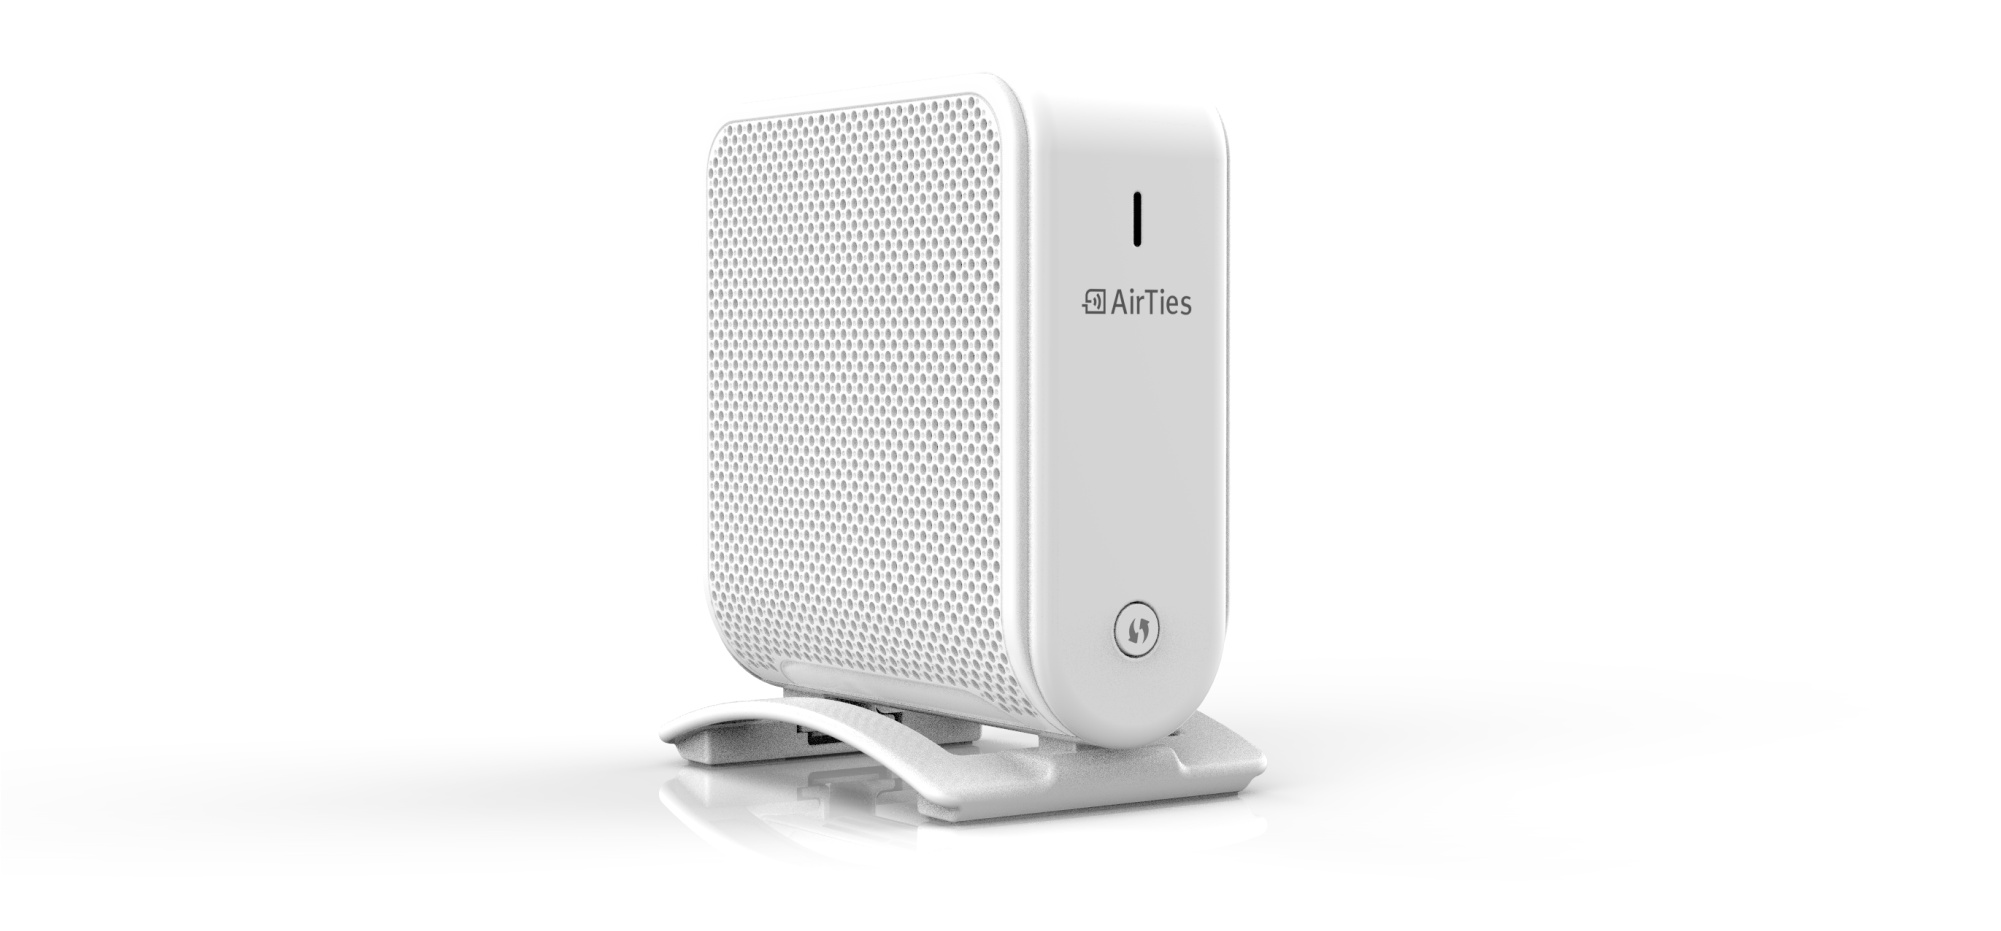 air4960 WiFi 6 Smart Modem